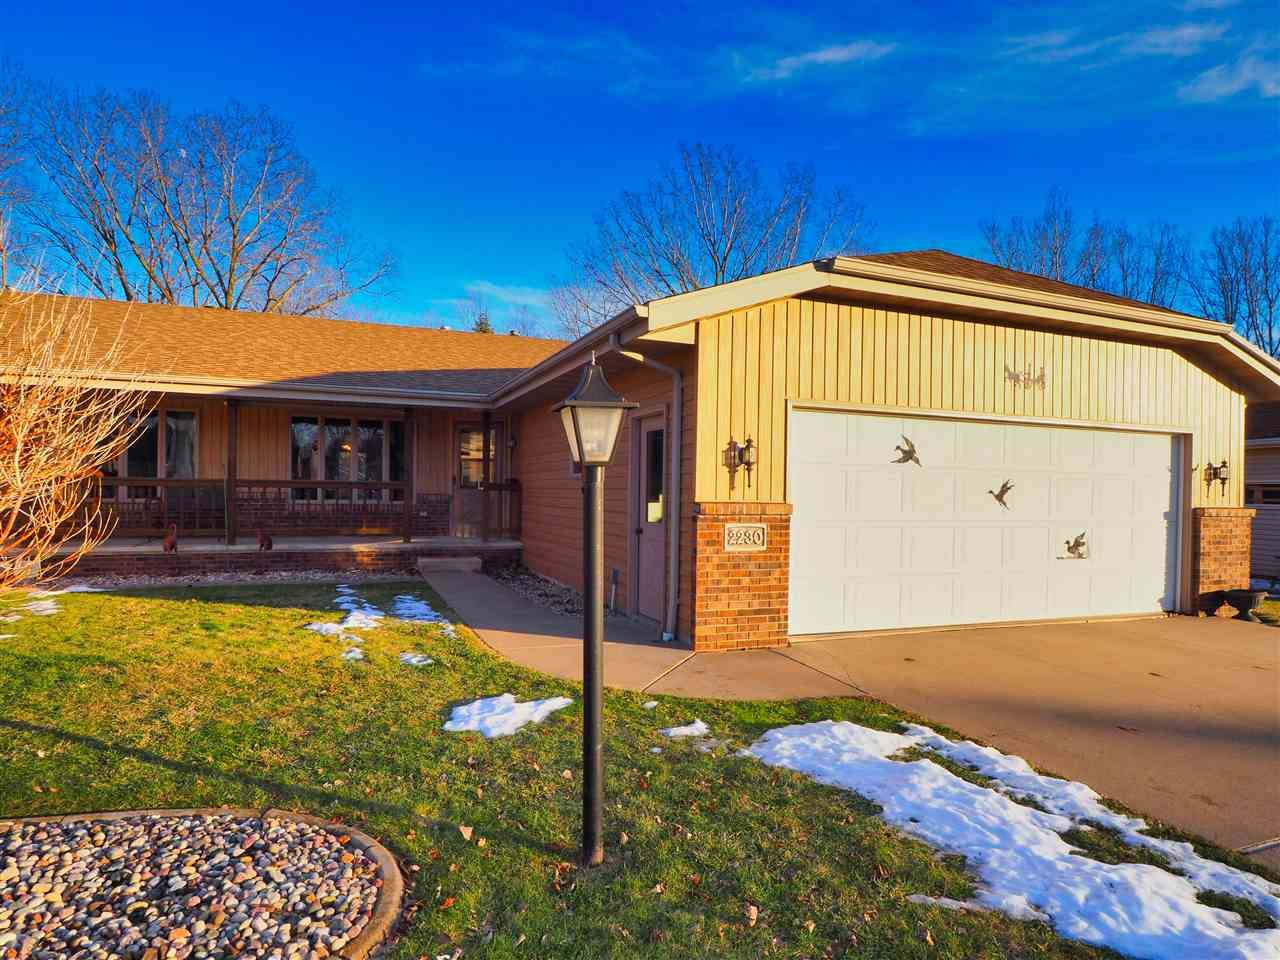 Photo for 2230 N CLOUDVIEW Drive, APPLETON, WI 54914 (MLS # 50215692)